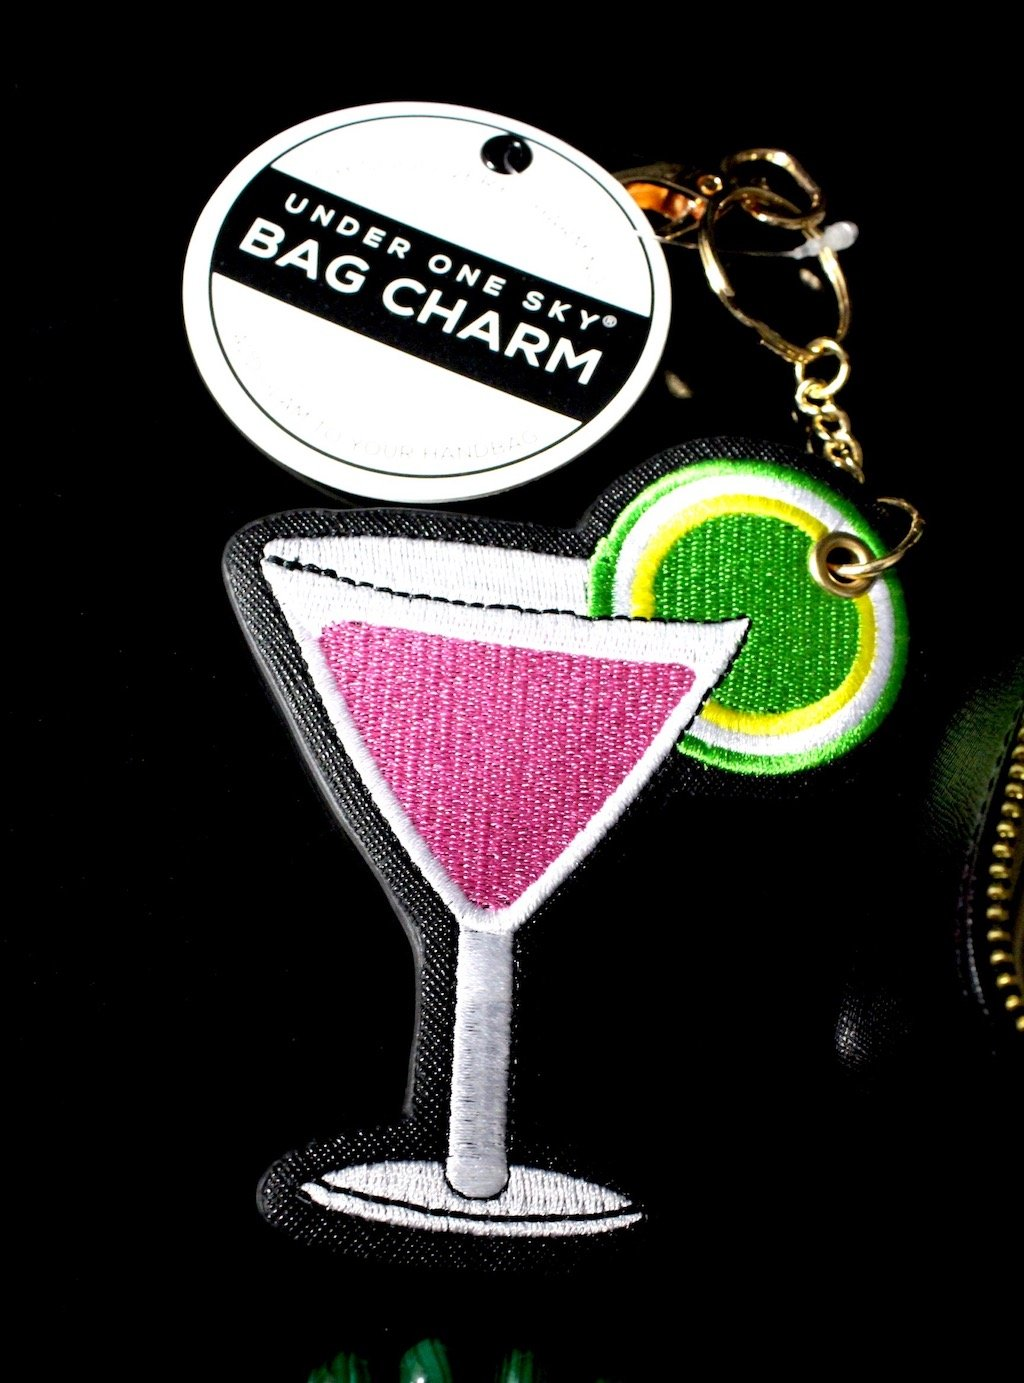 neiman marcus last call under 1 sky cosmo bag charm